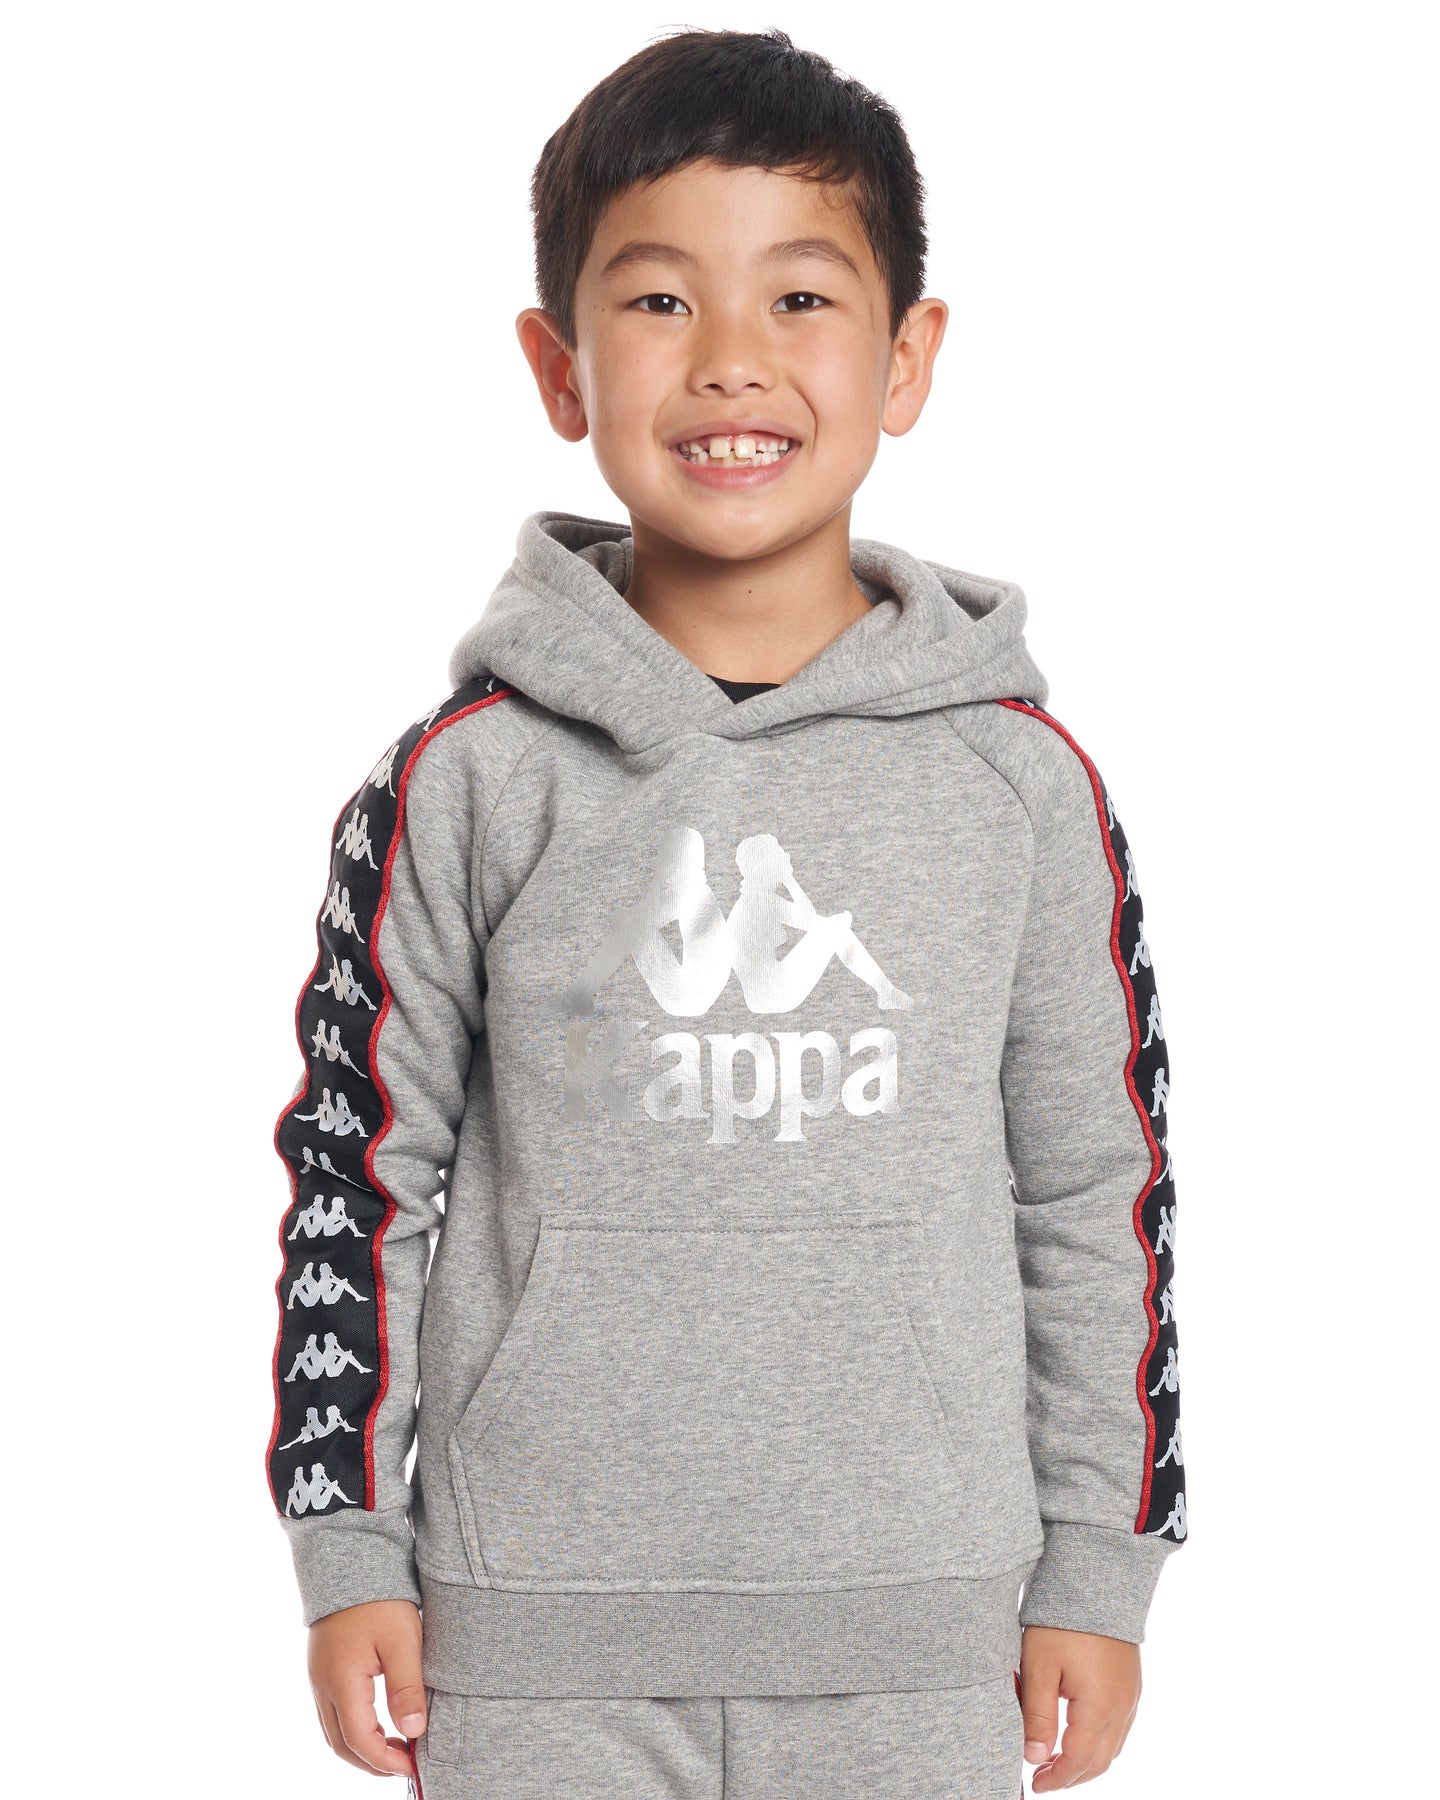 45151544df Kids Authentic 222 Banda Hurtado Sweatshirt GreyMdMel Black Red ...